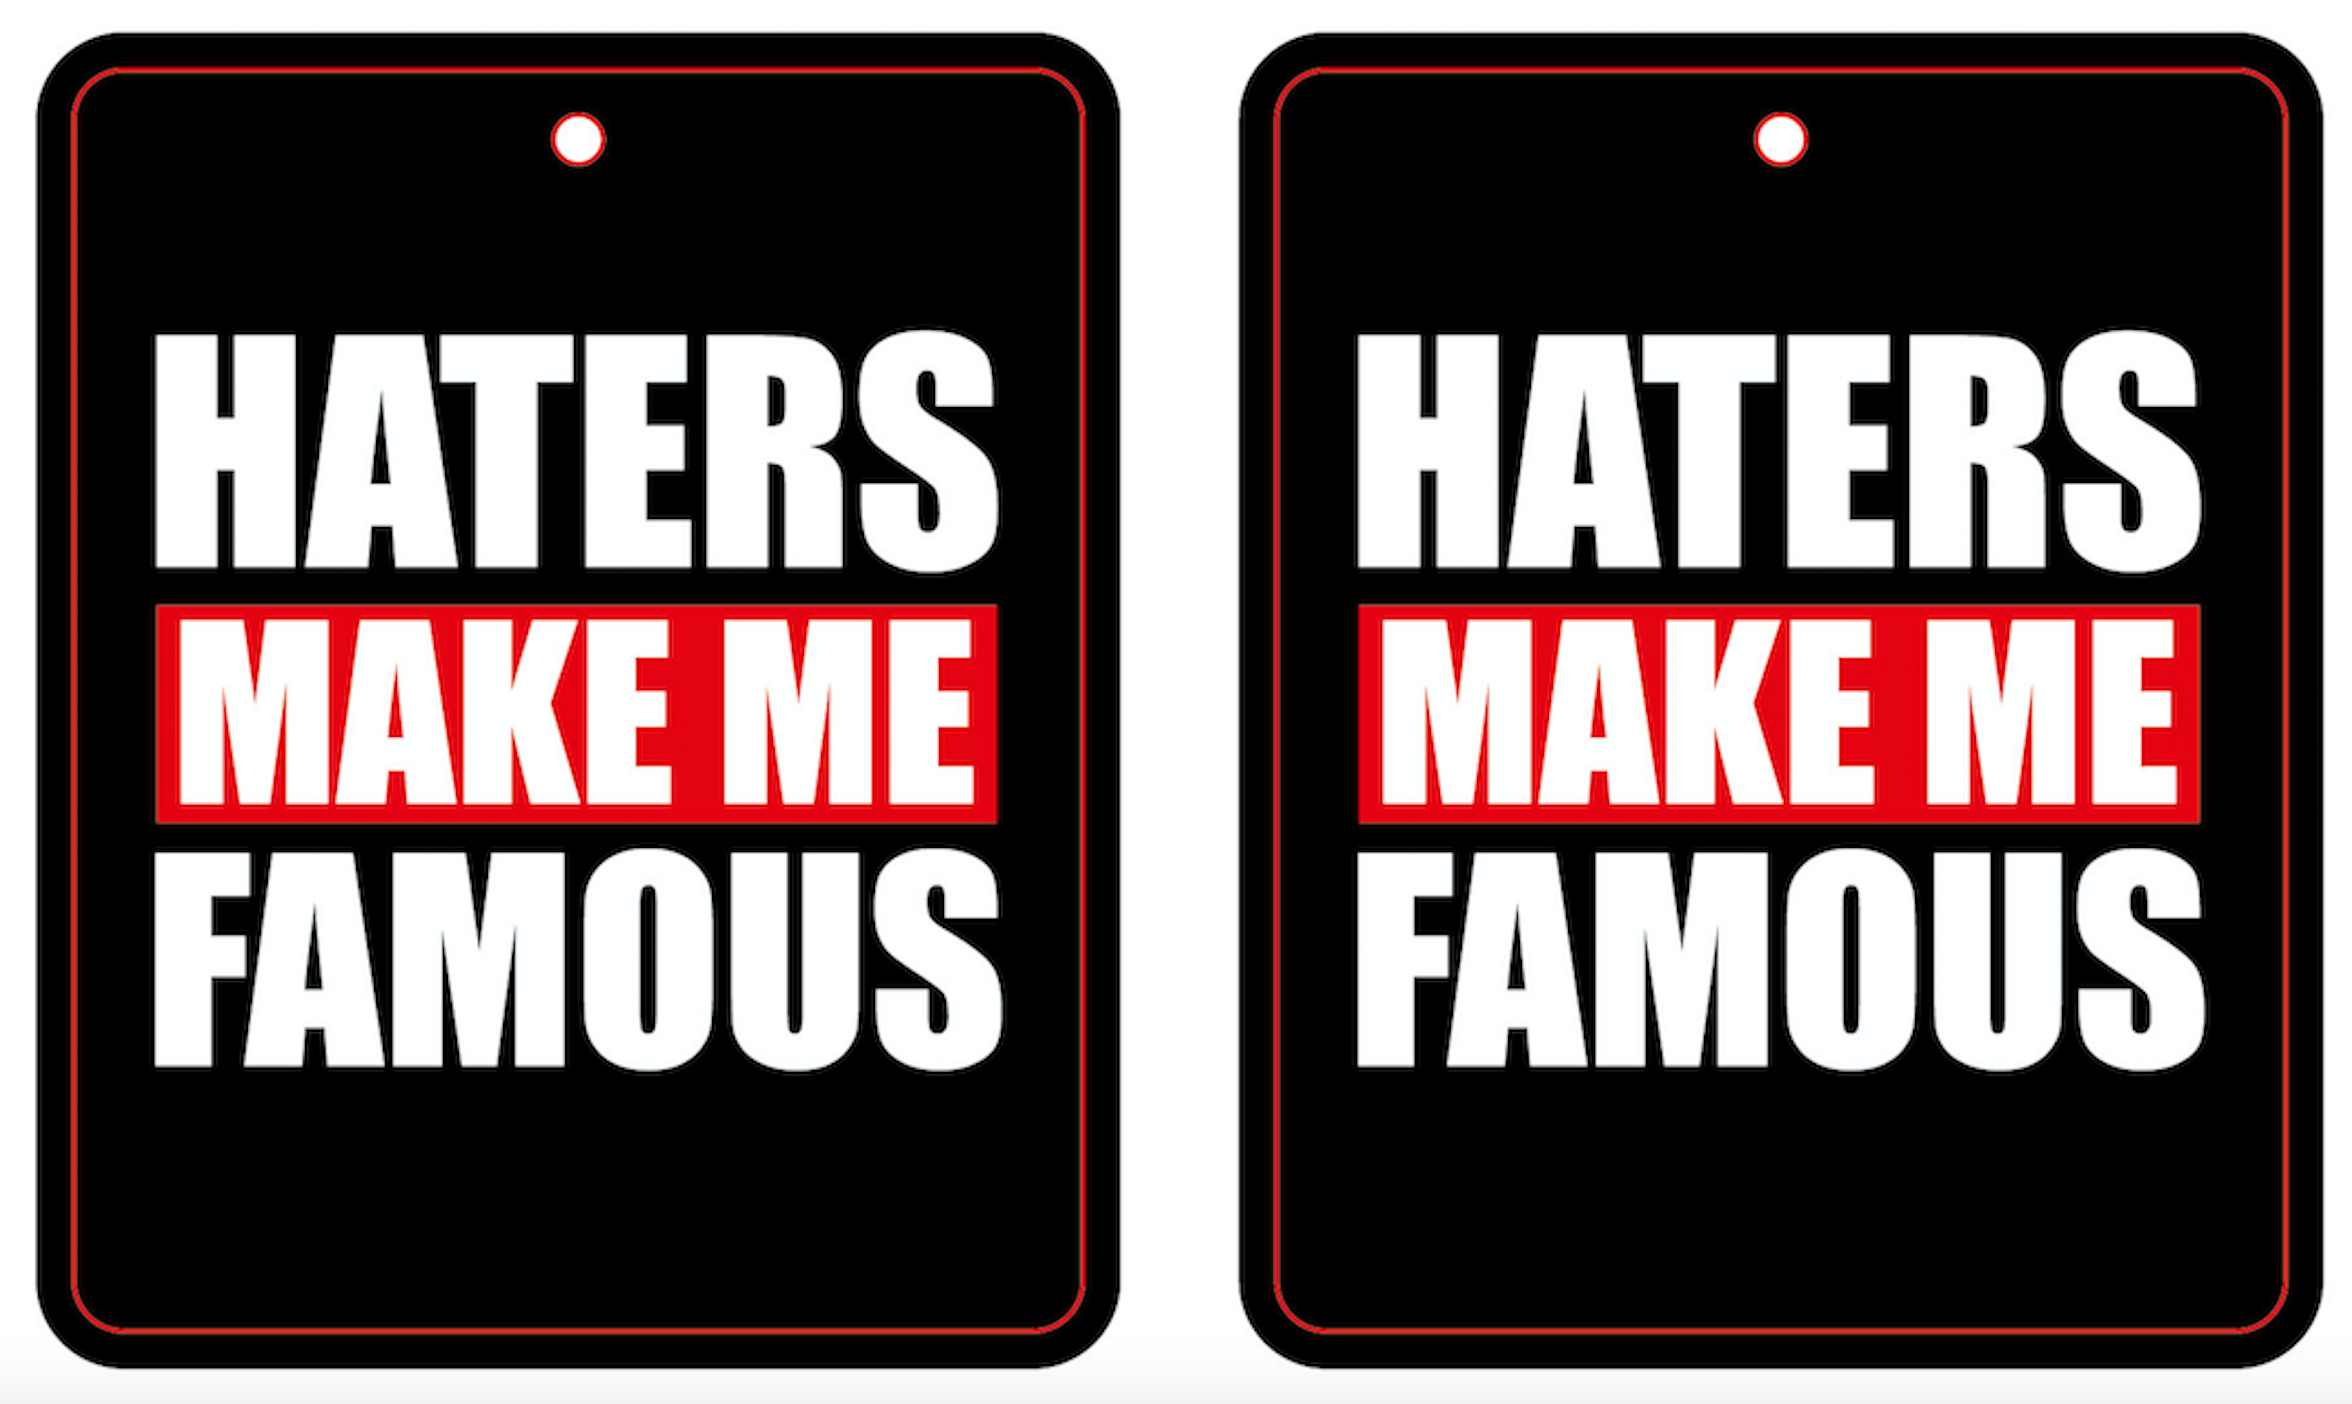 HATERS AIR FRESHENER